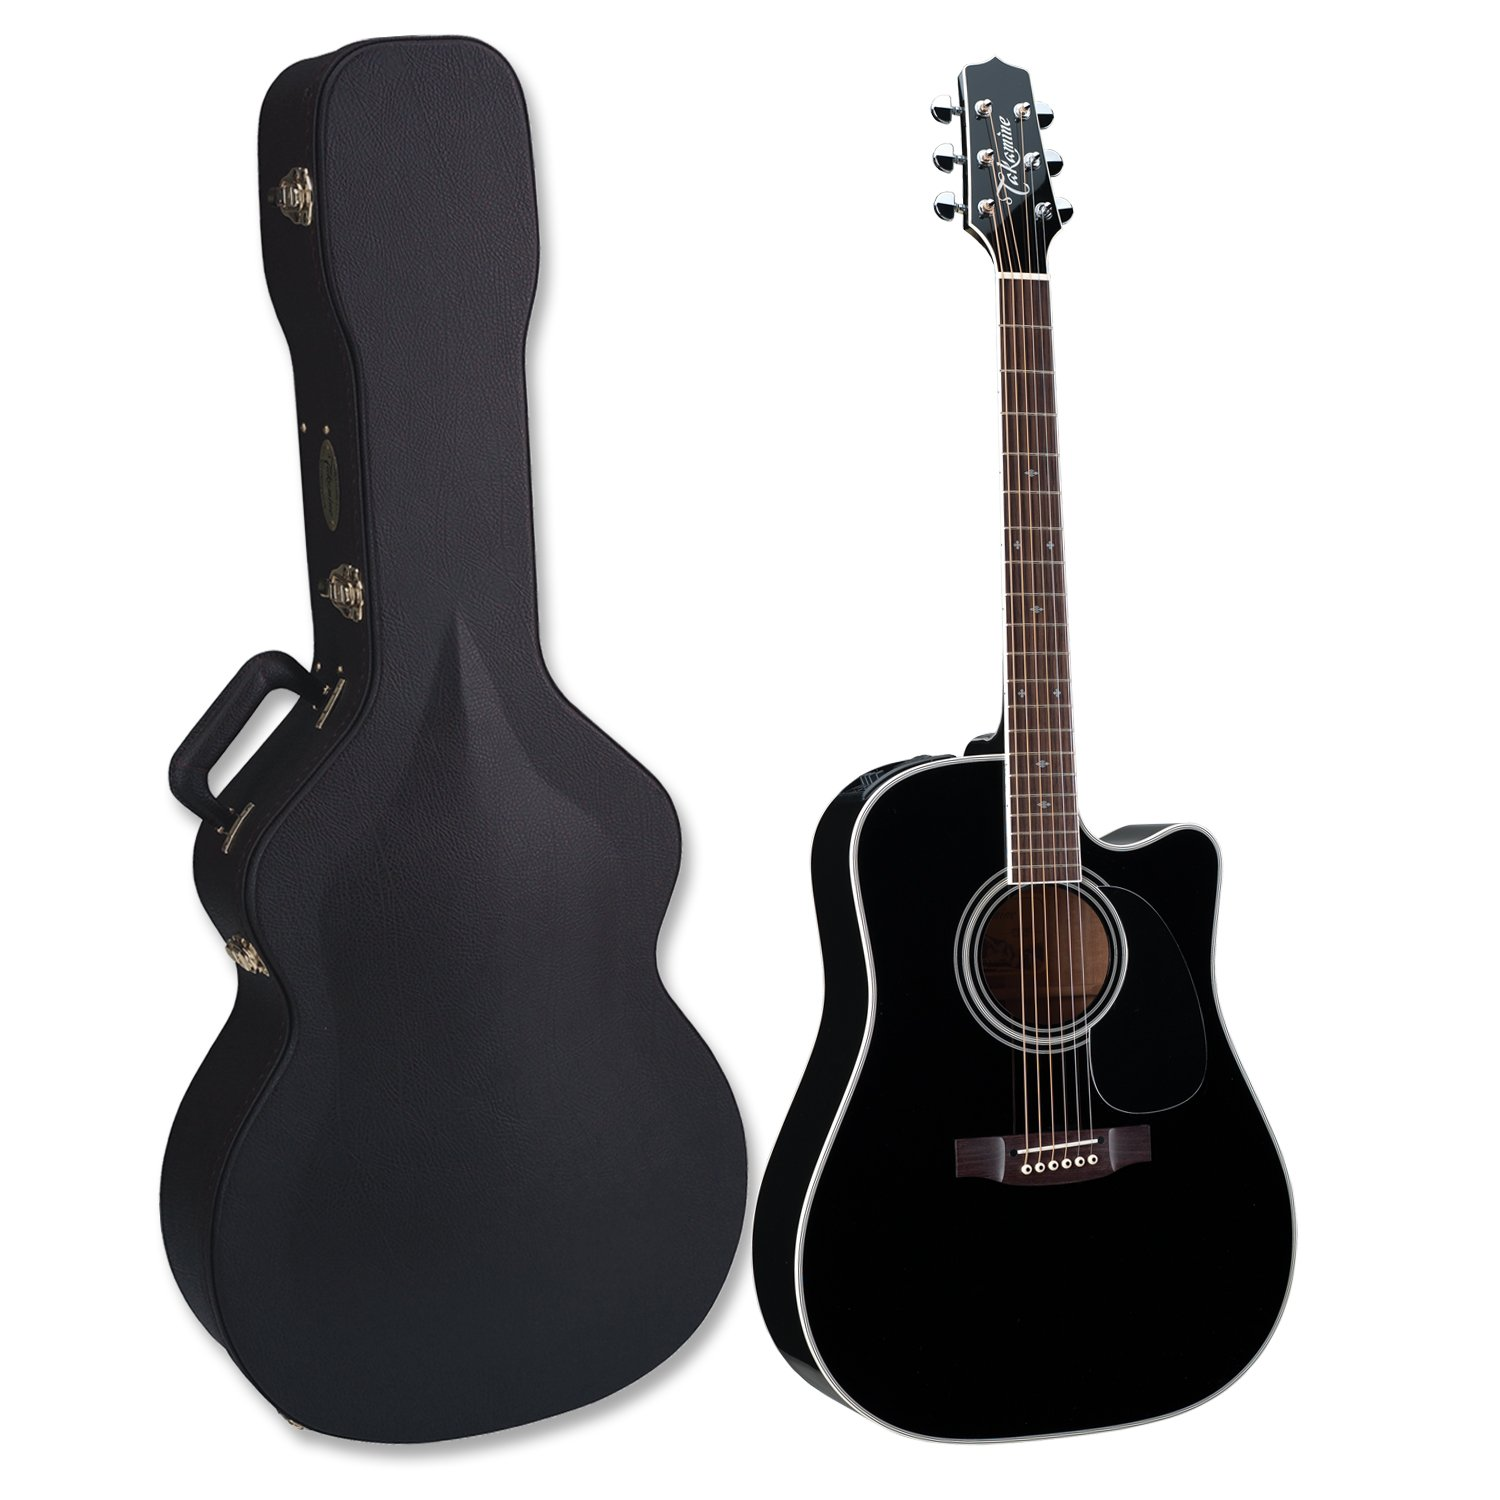 takamine ef341sc pro series dreadnought acoustic electric guitar black with case guitar affinity. Black Bedroom Furniture Sets. Home Design Ideas